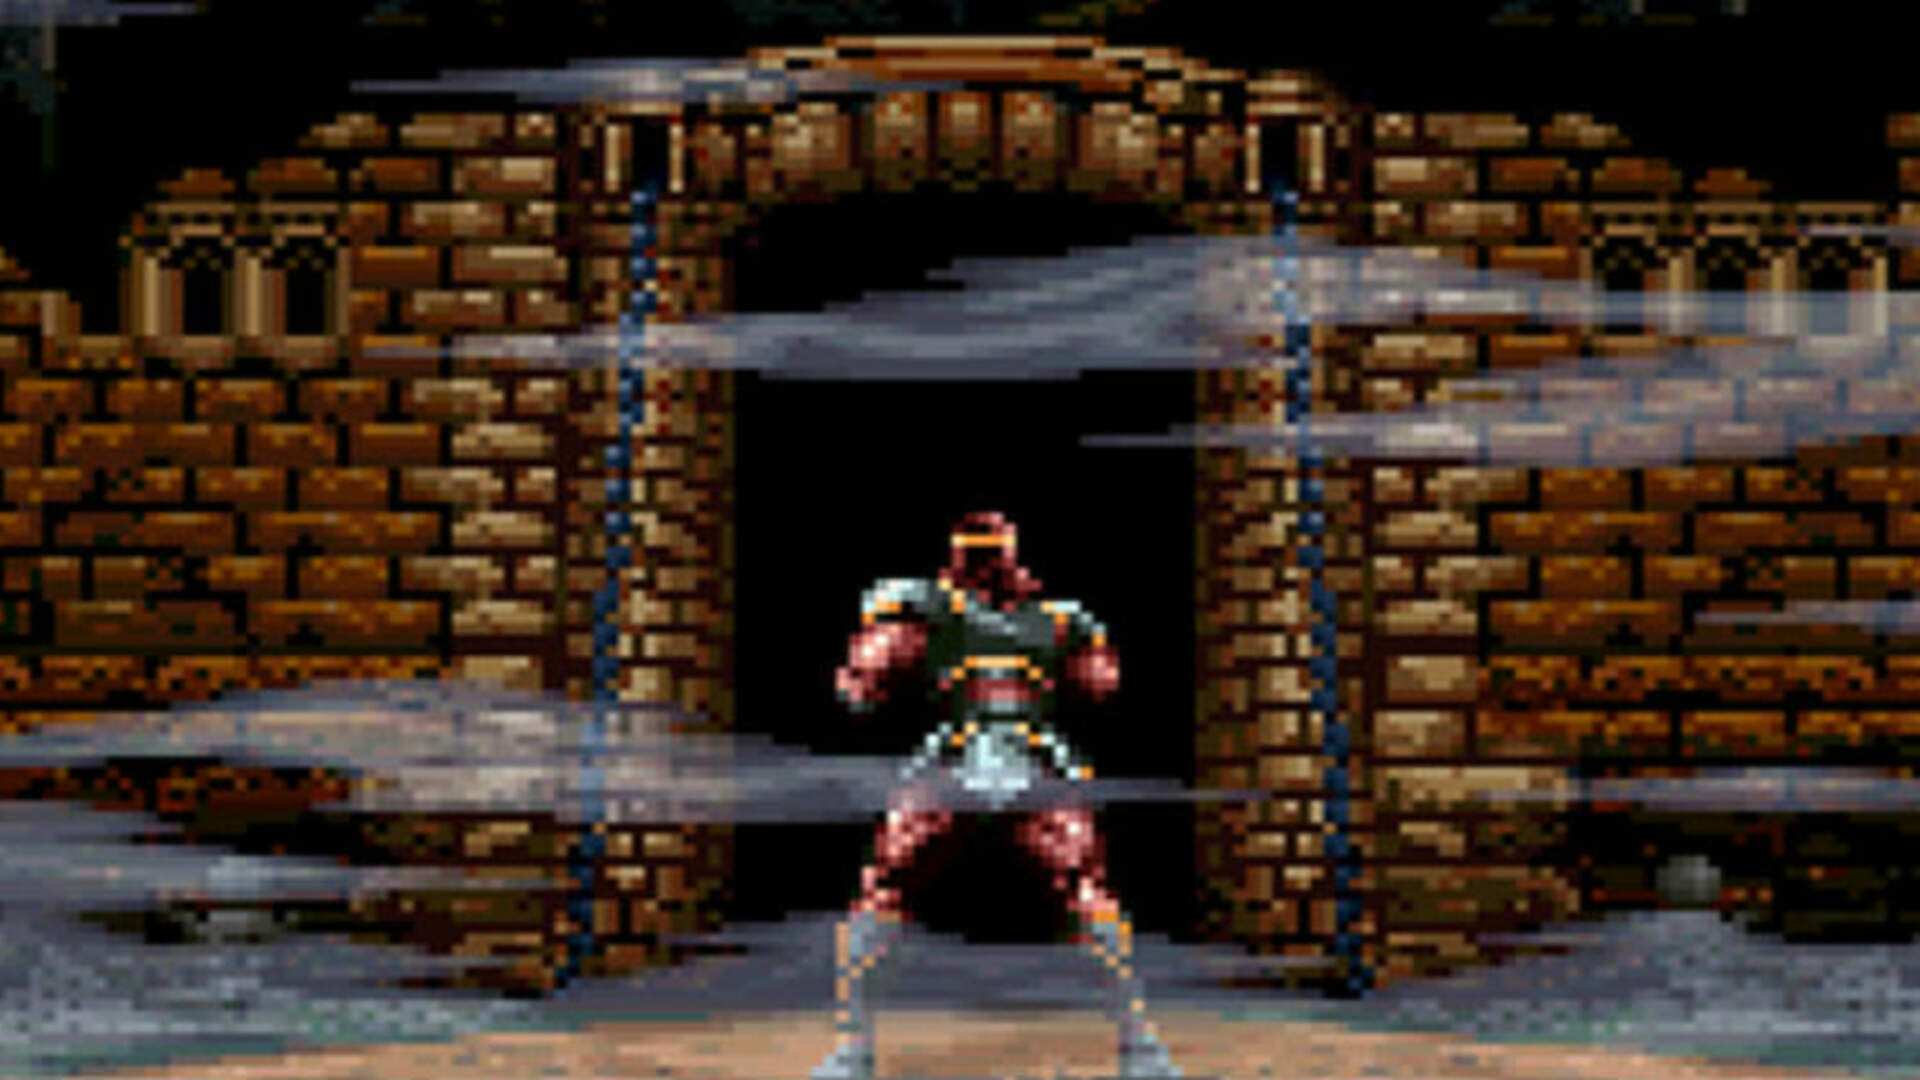 Note Block Beat Box: Listening to In the Castle from Super Castlevania IV